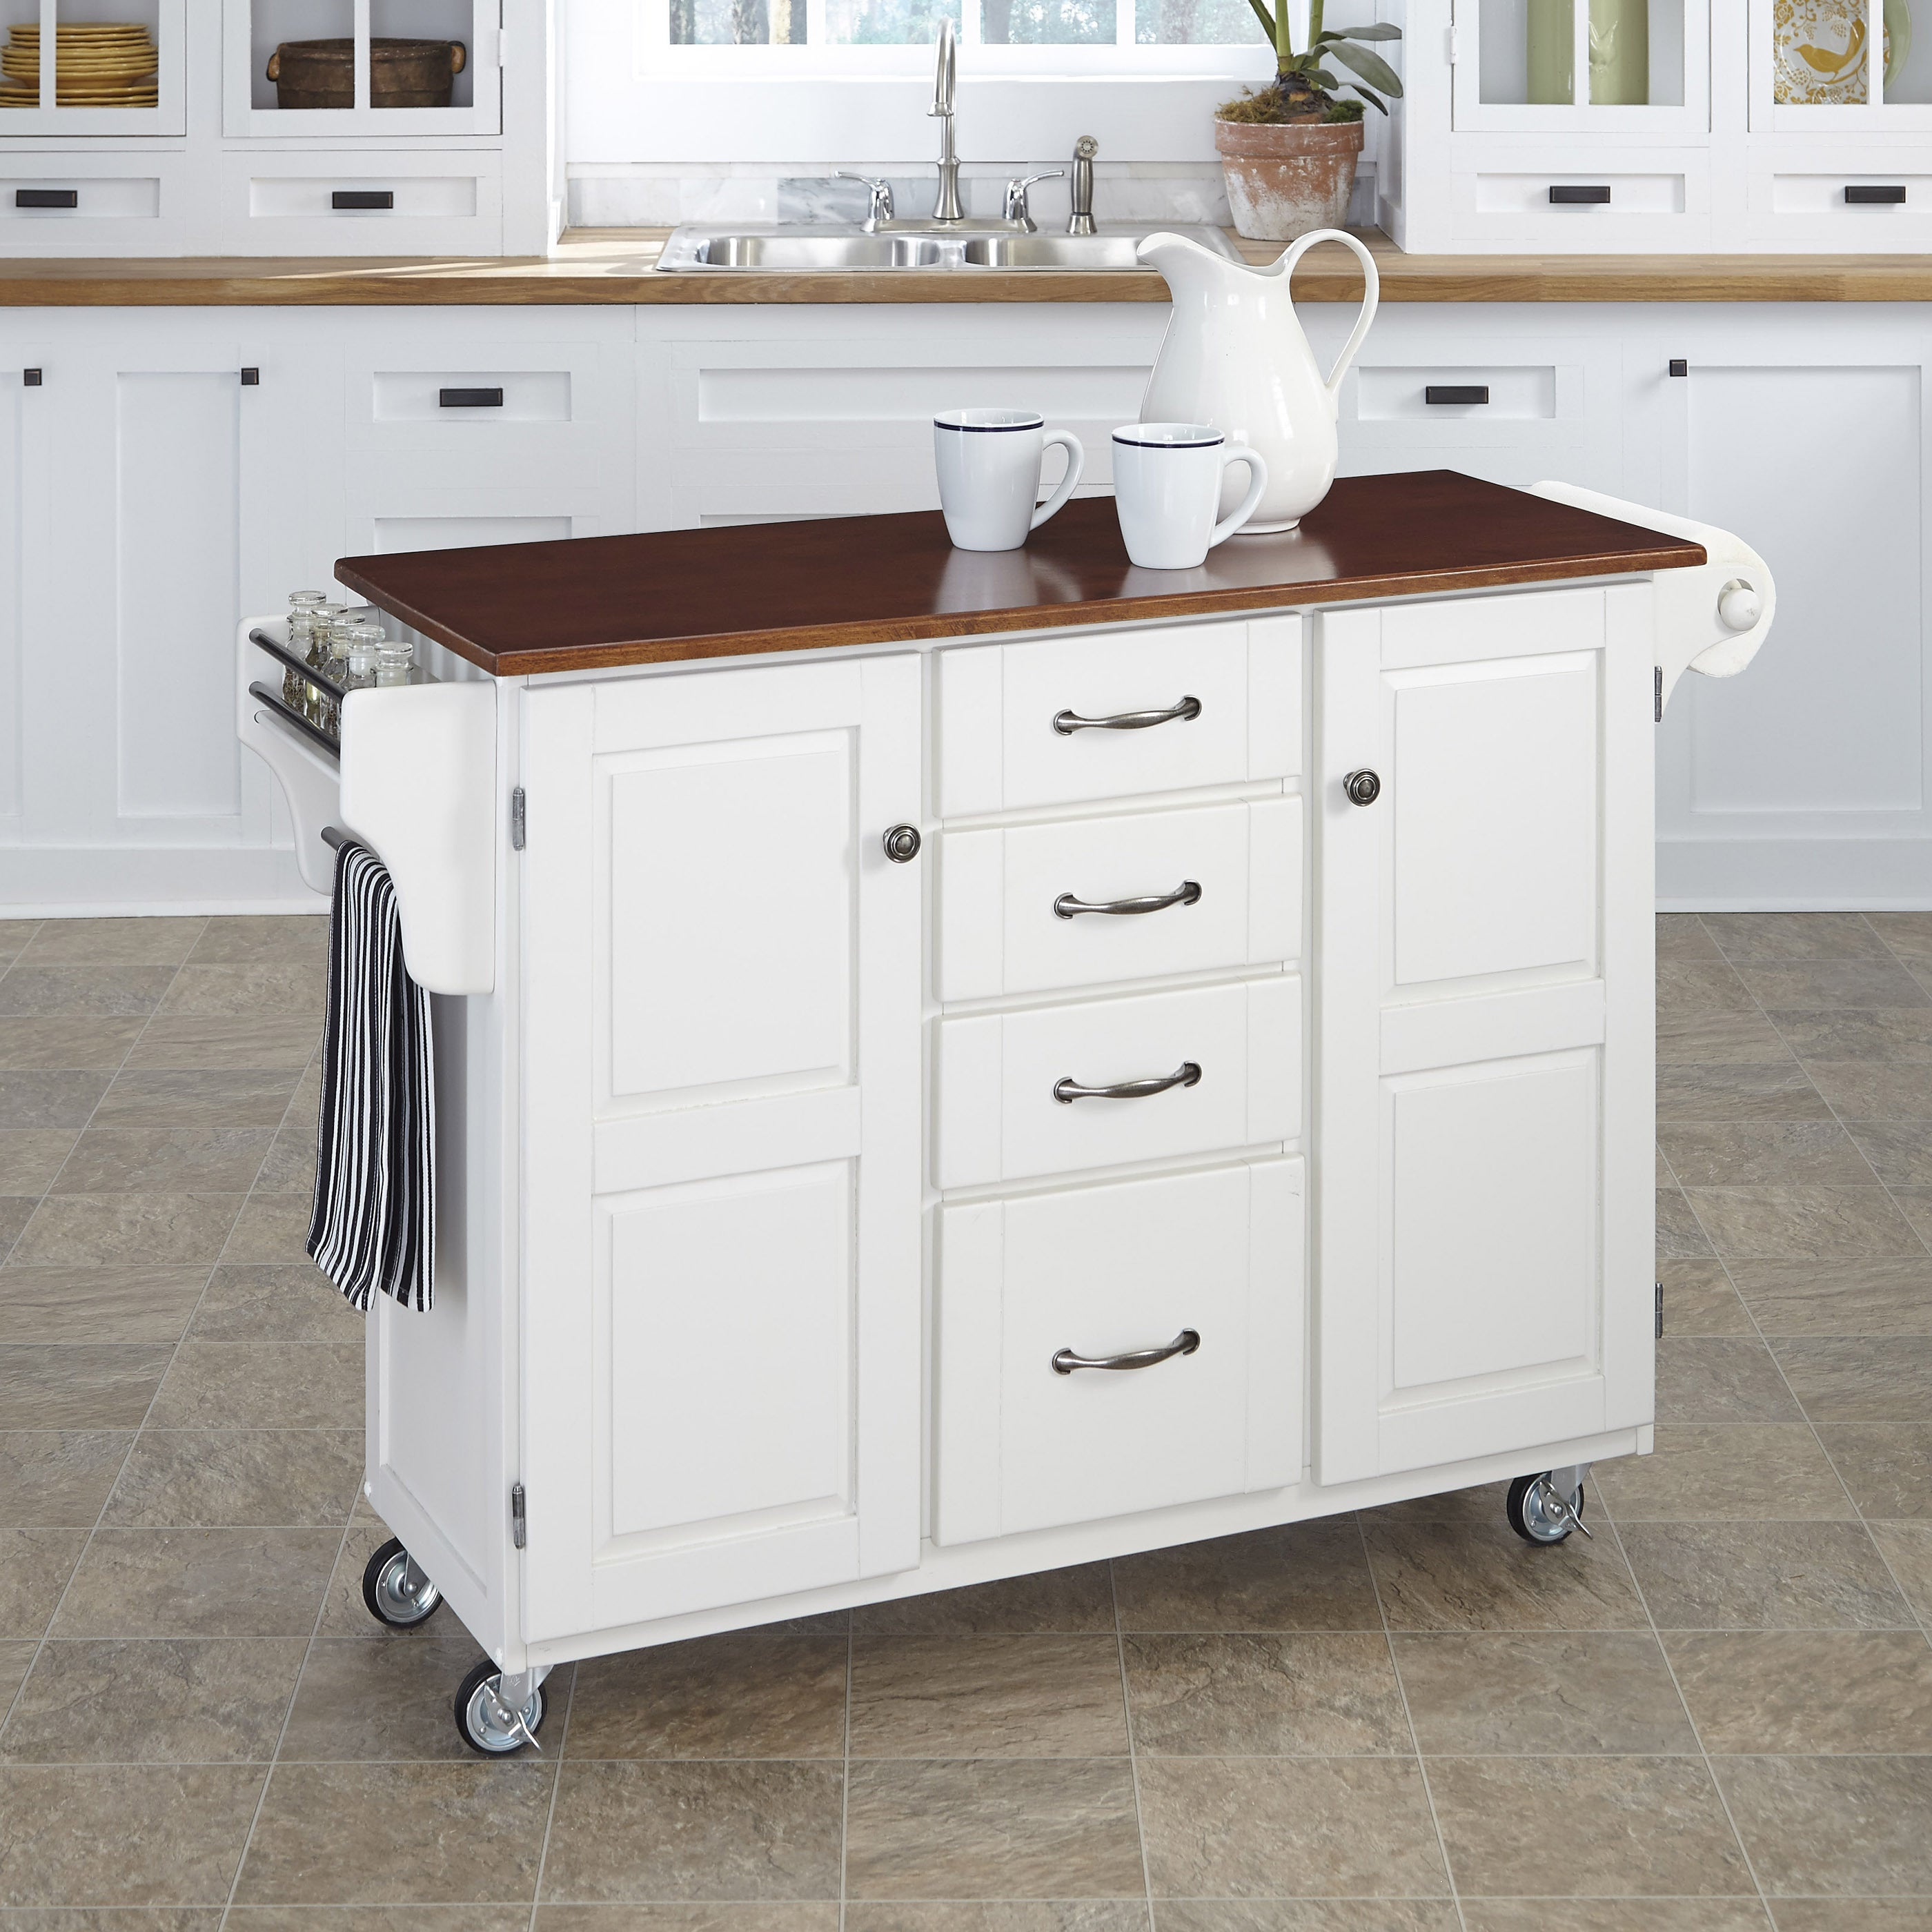 Gracewood Hollow Defoe White Finish with Cherry Top Kitchen Cart